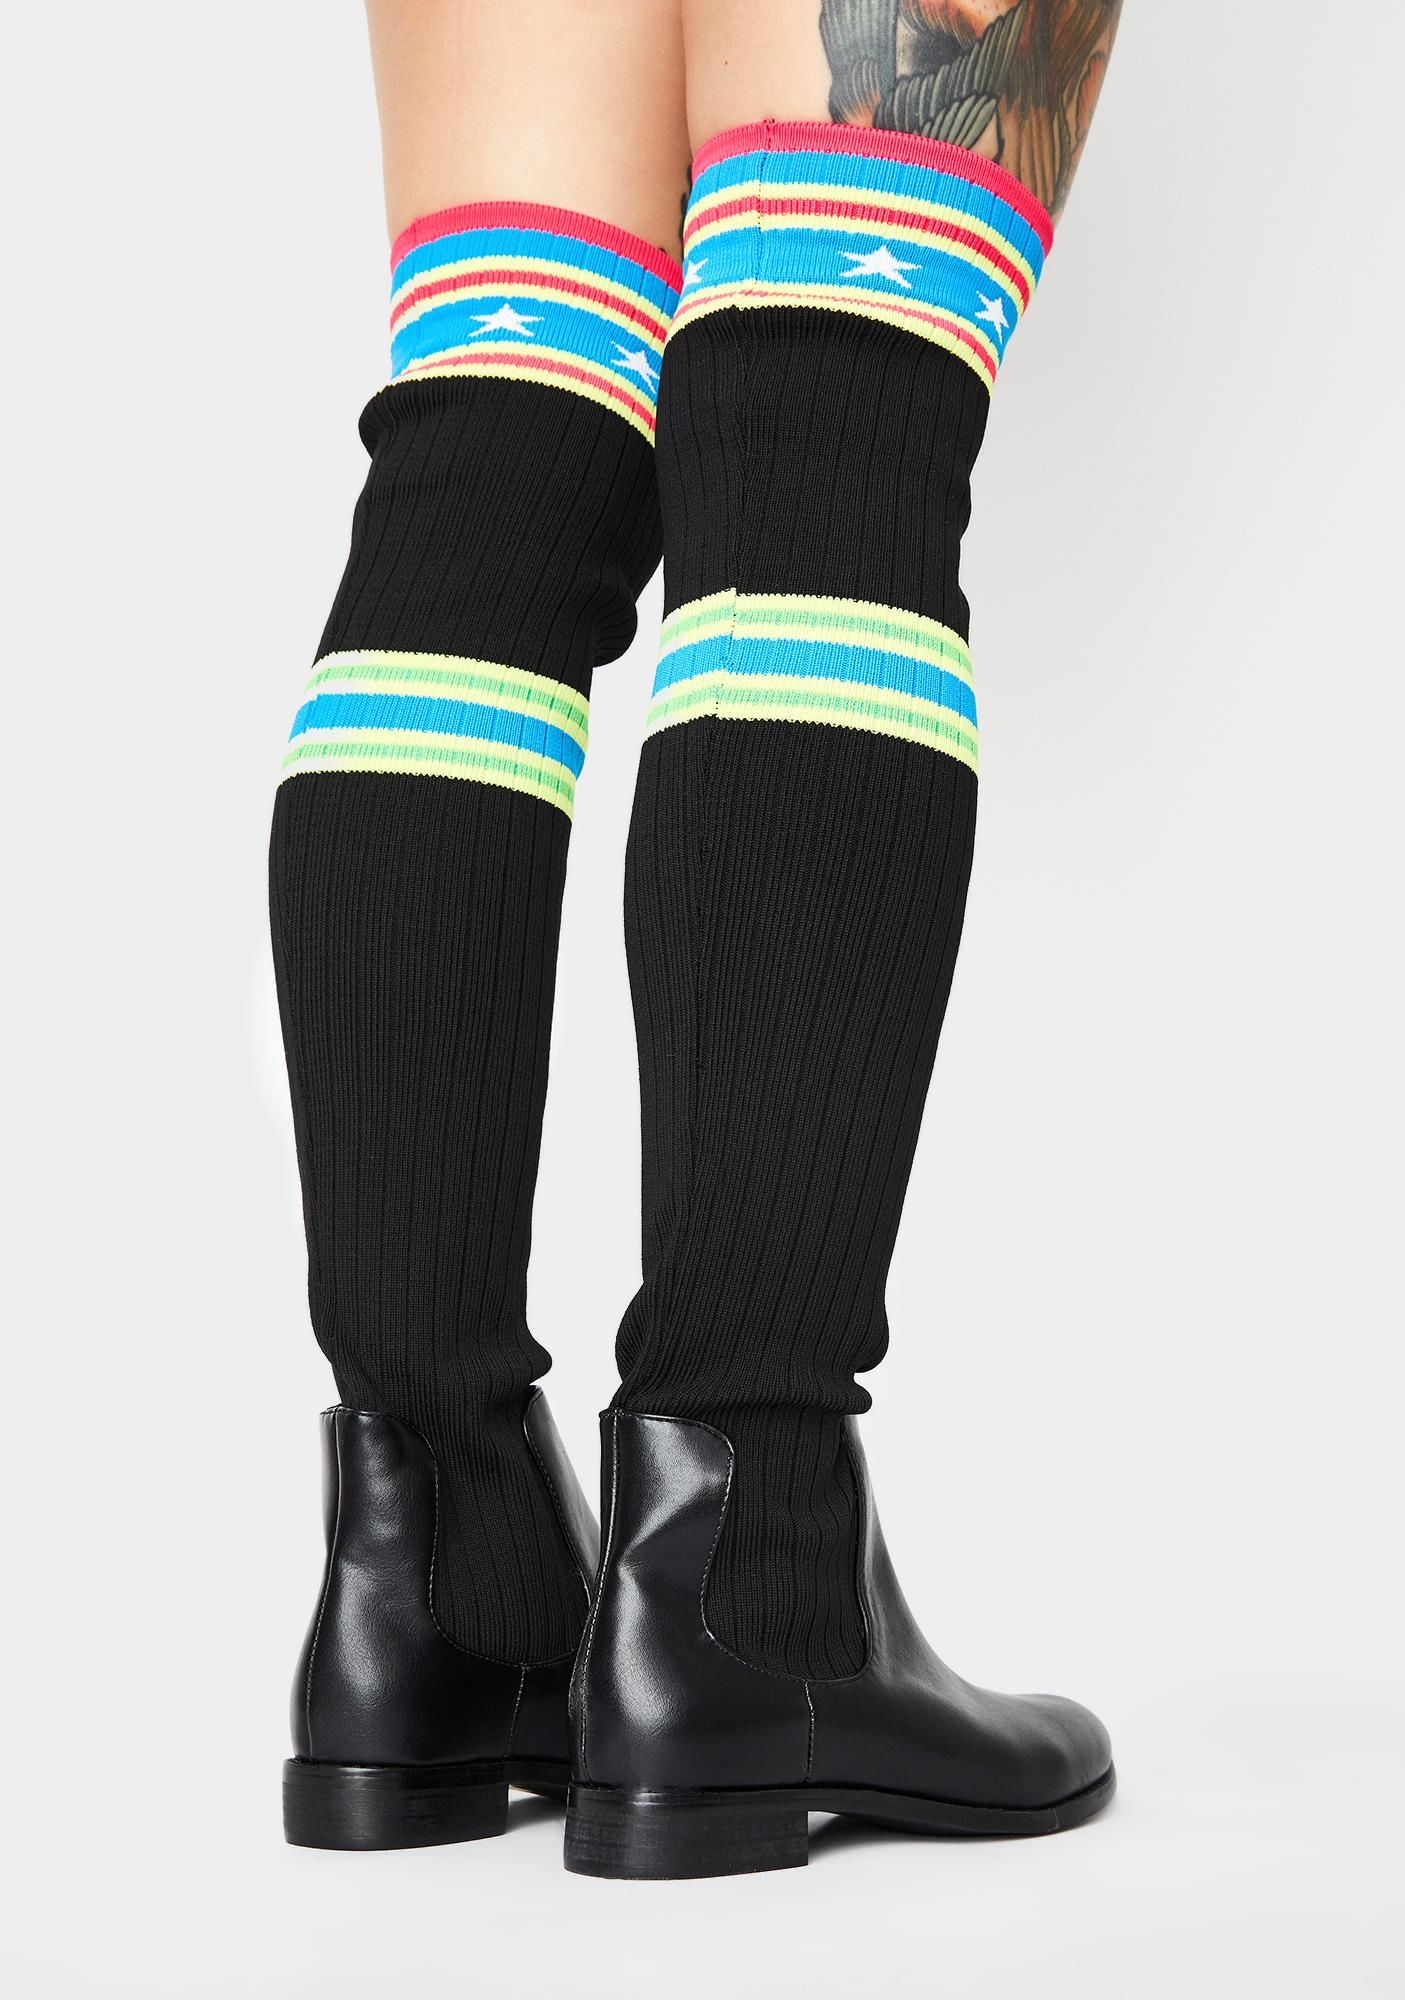 Star Sock Over The Knee Boots Black